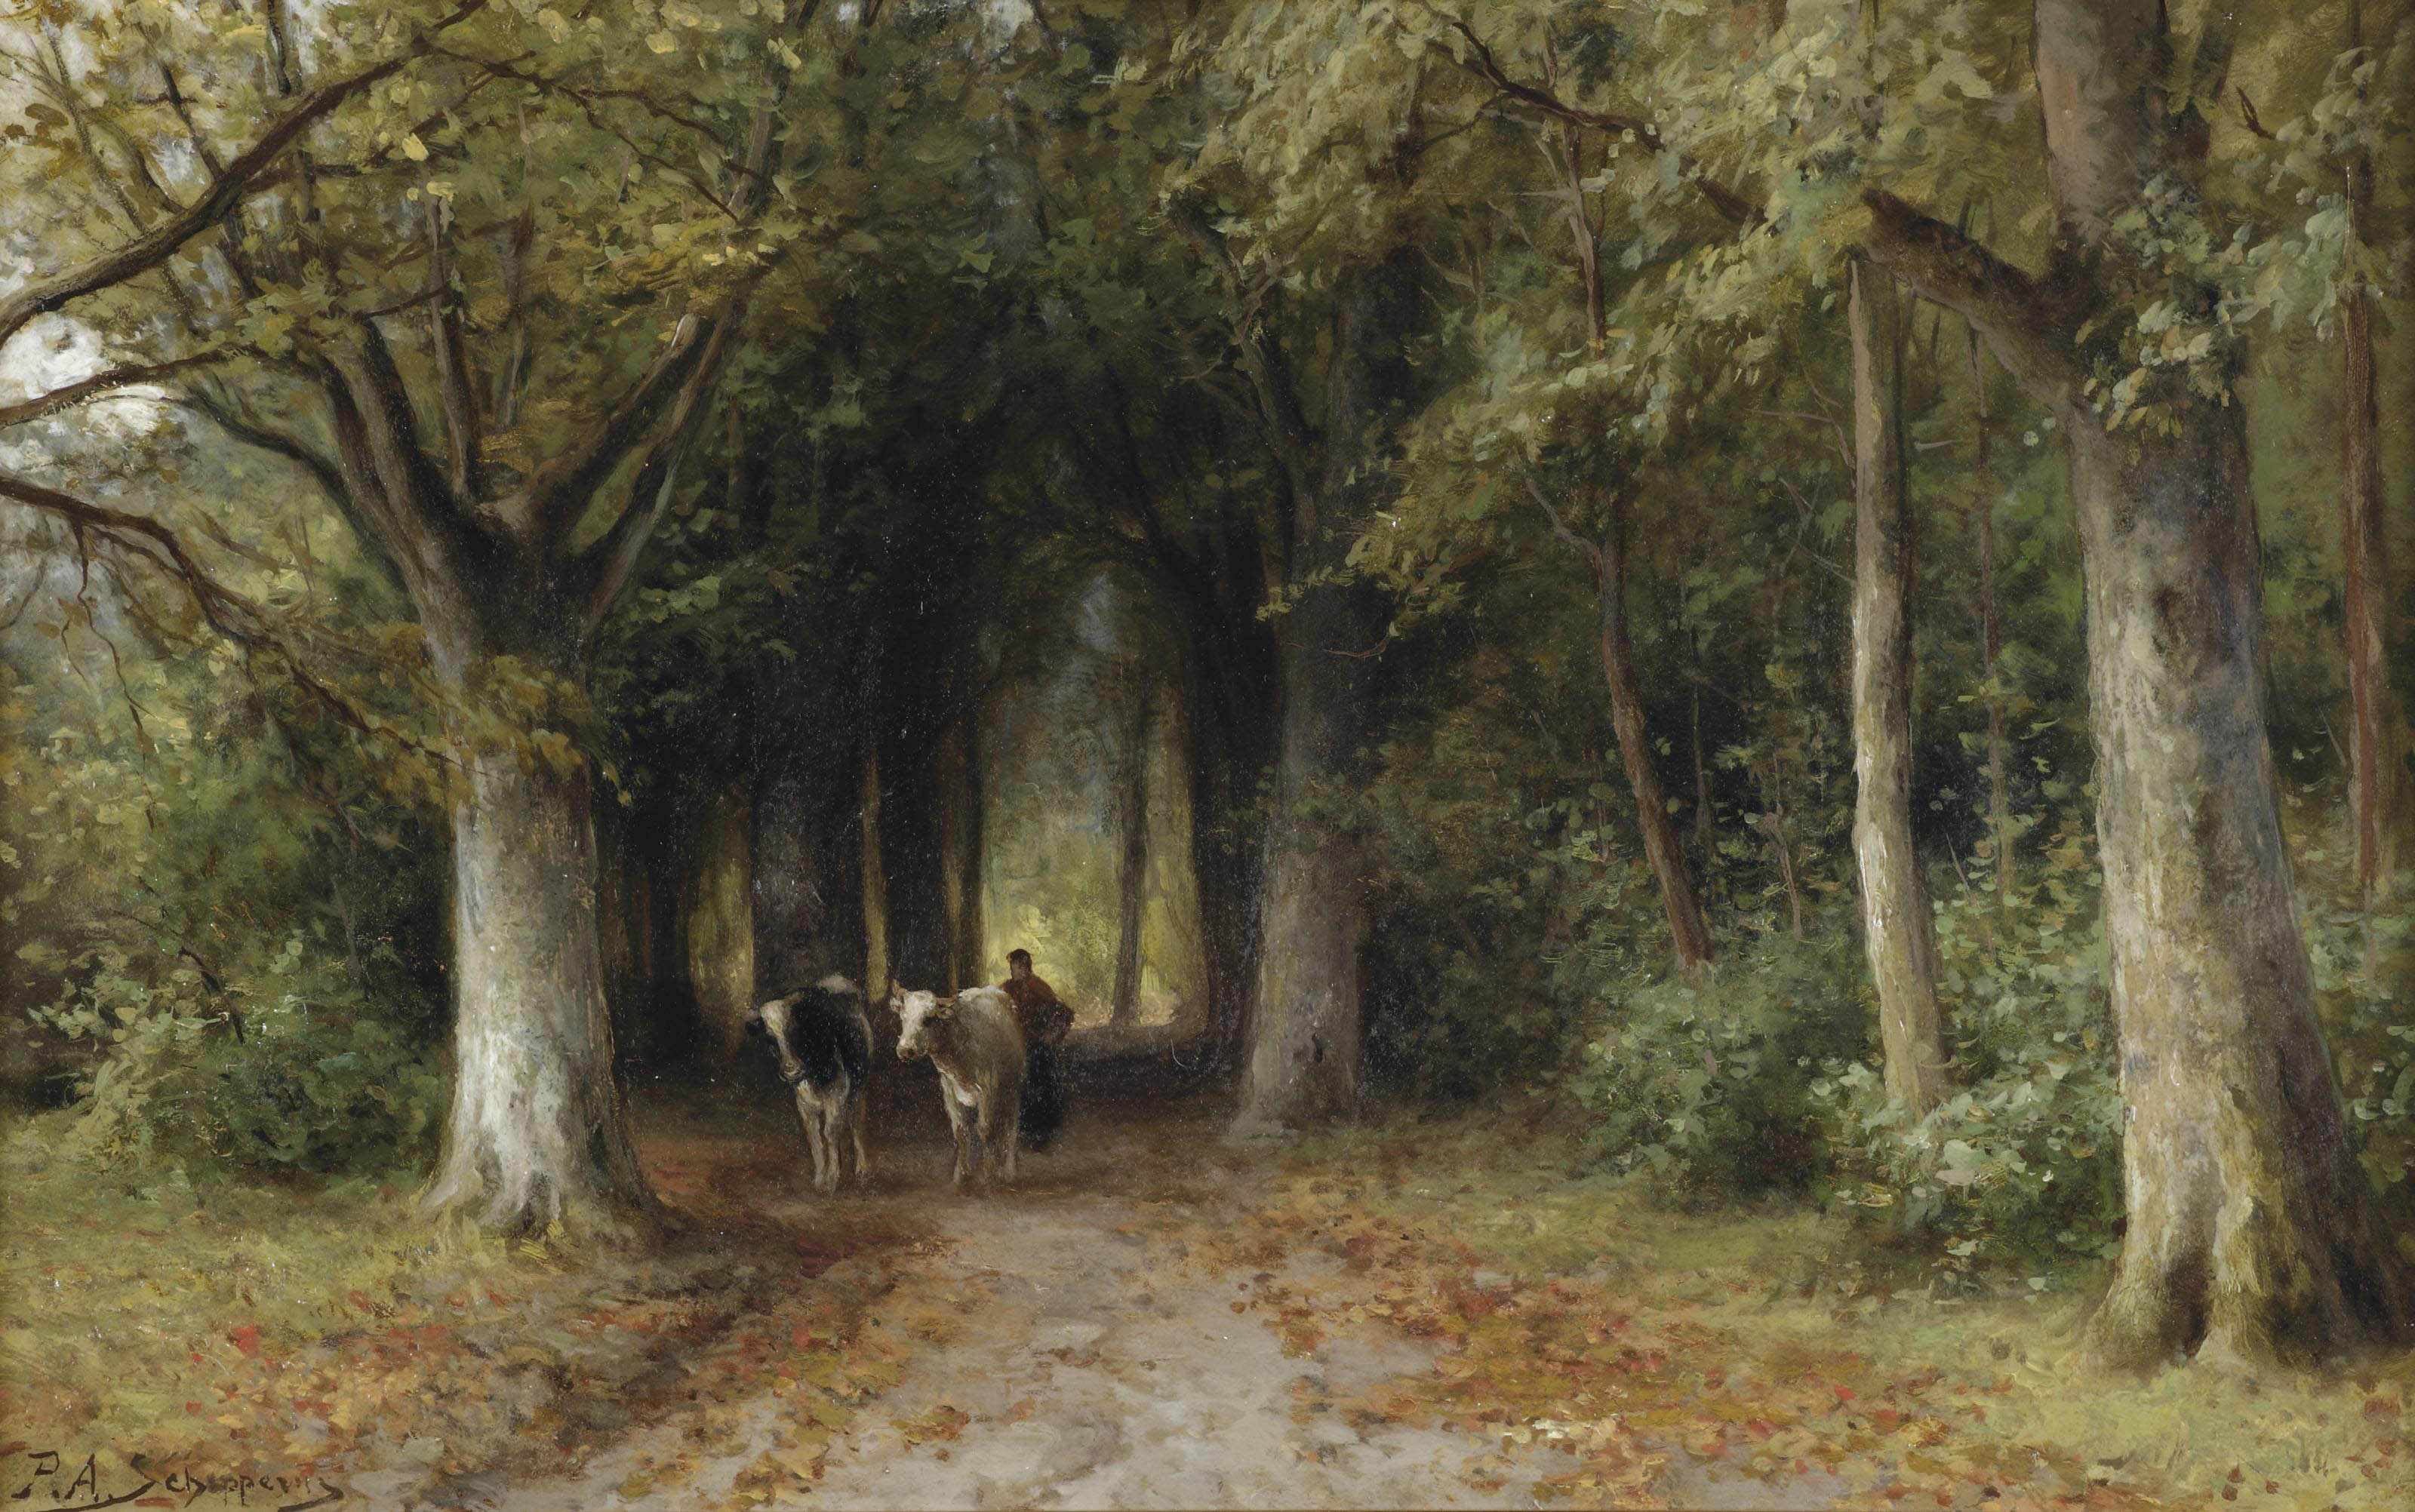 Farmer and cows on a forest track